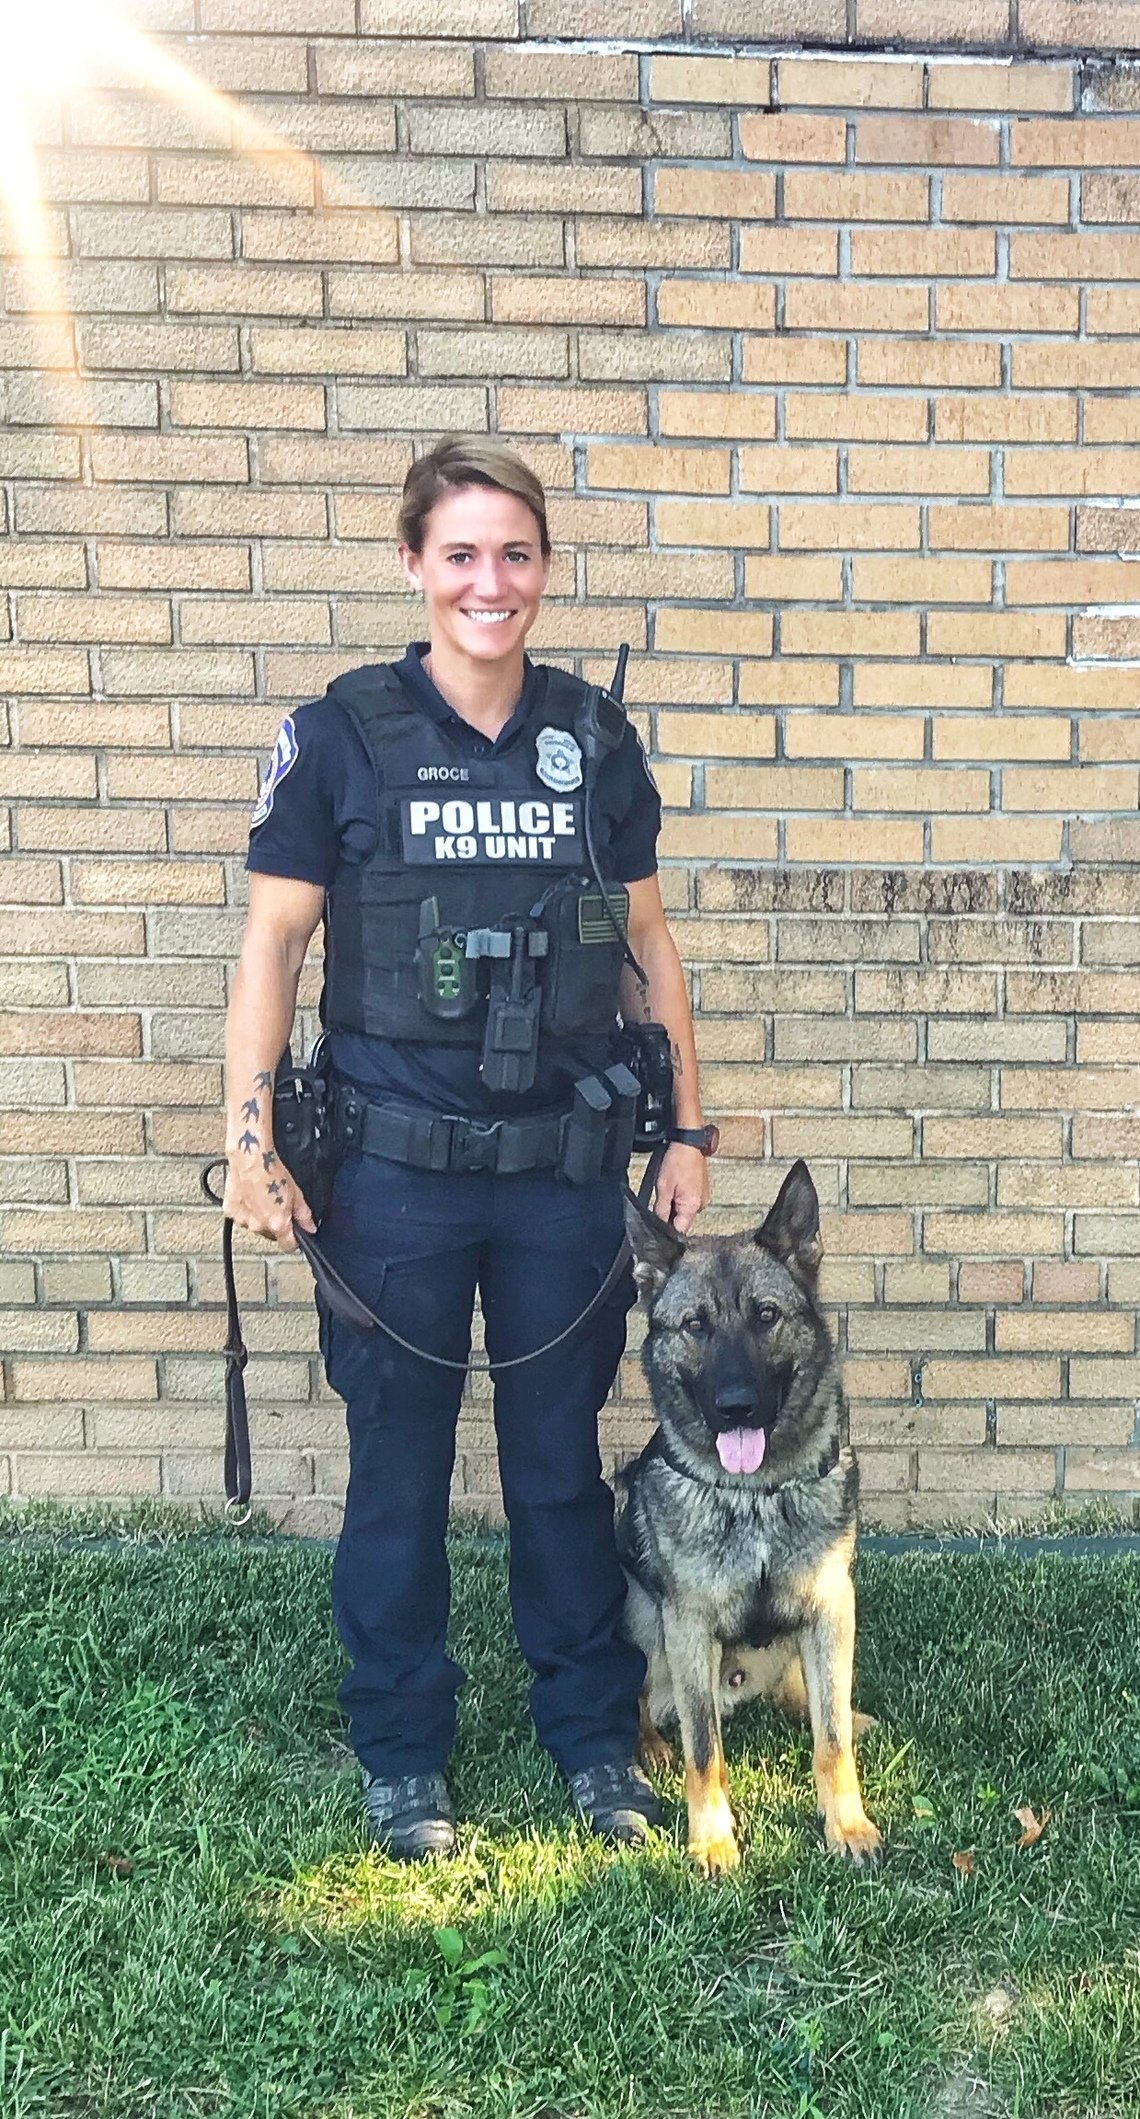 IMPD Officer Molly Groce poses with her second K-9 partner, who she calls Lando, in a 2019 photo shared by the police department.